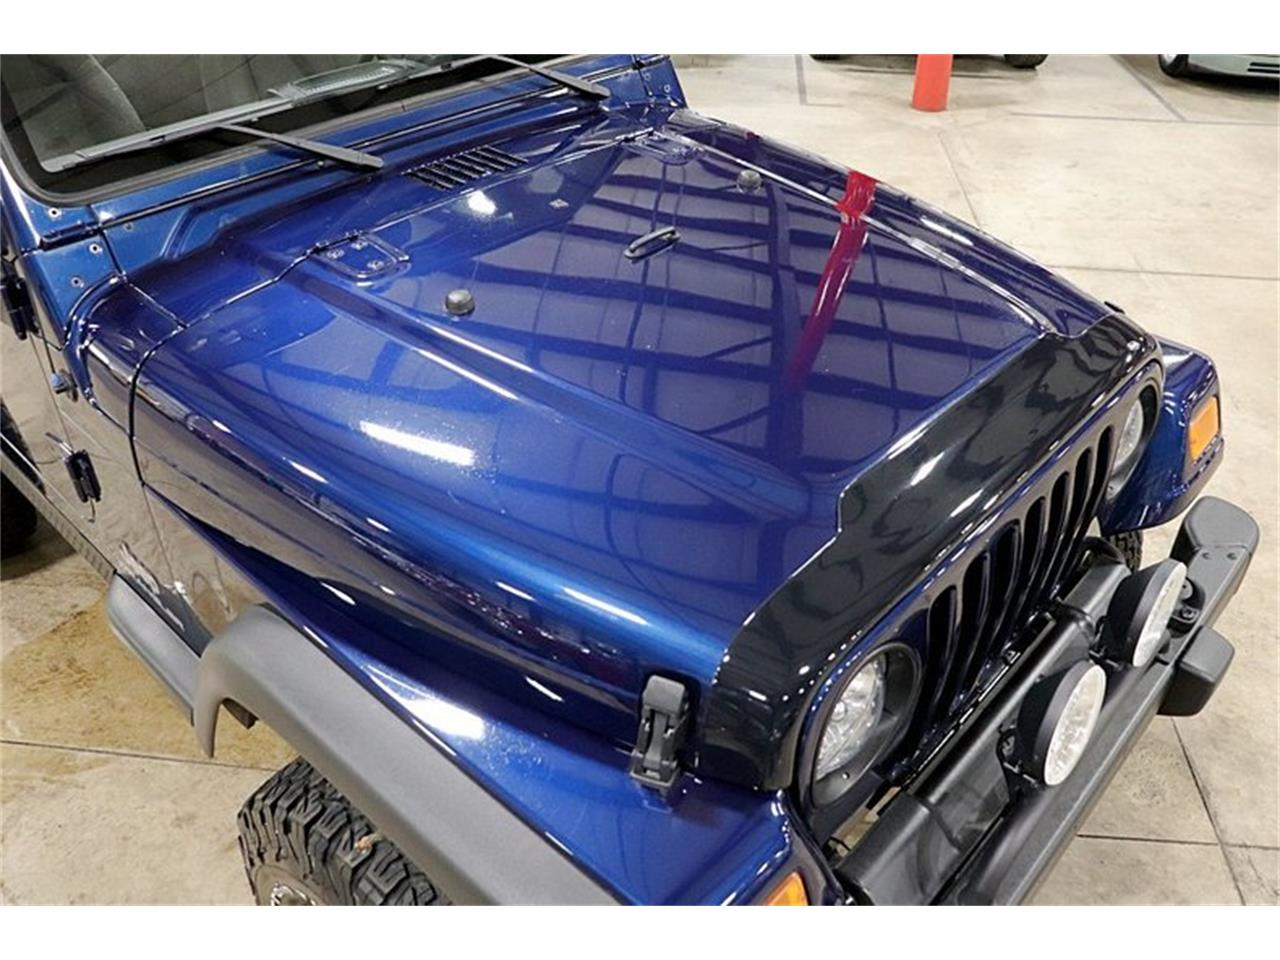 2005 Jeep Wrangler for sale in Kentwood, MI – photo 10